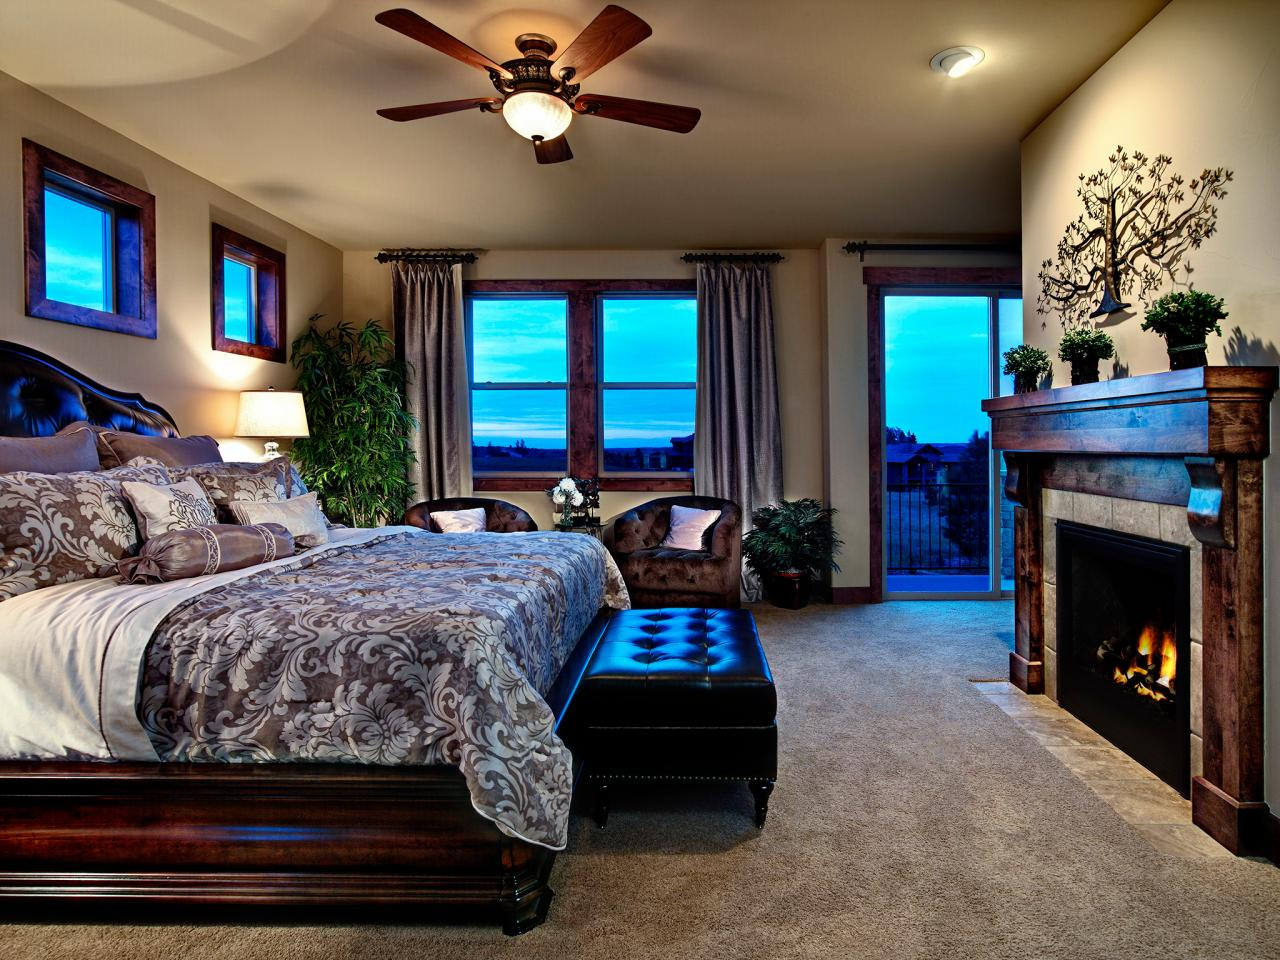 Master bedroom with fireplace hgtv Master bedroom with fireplace images